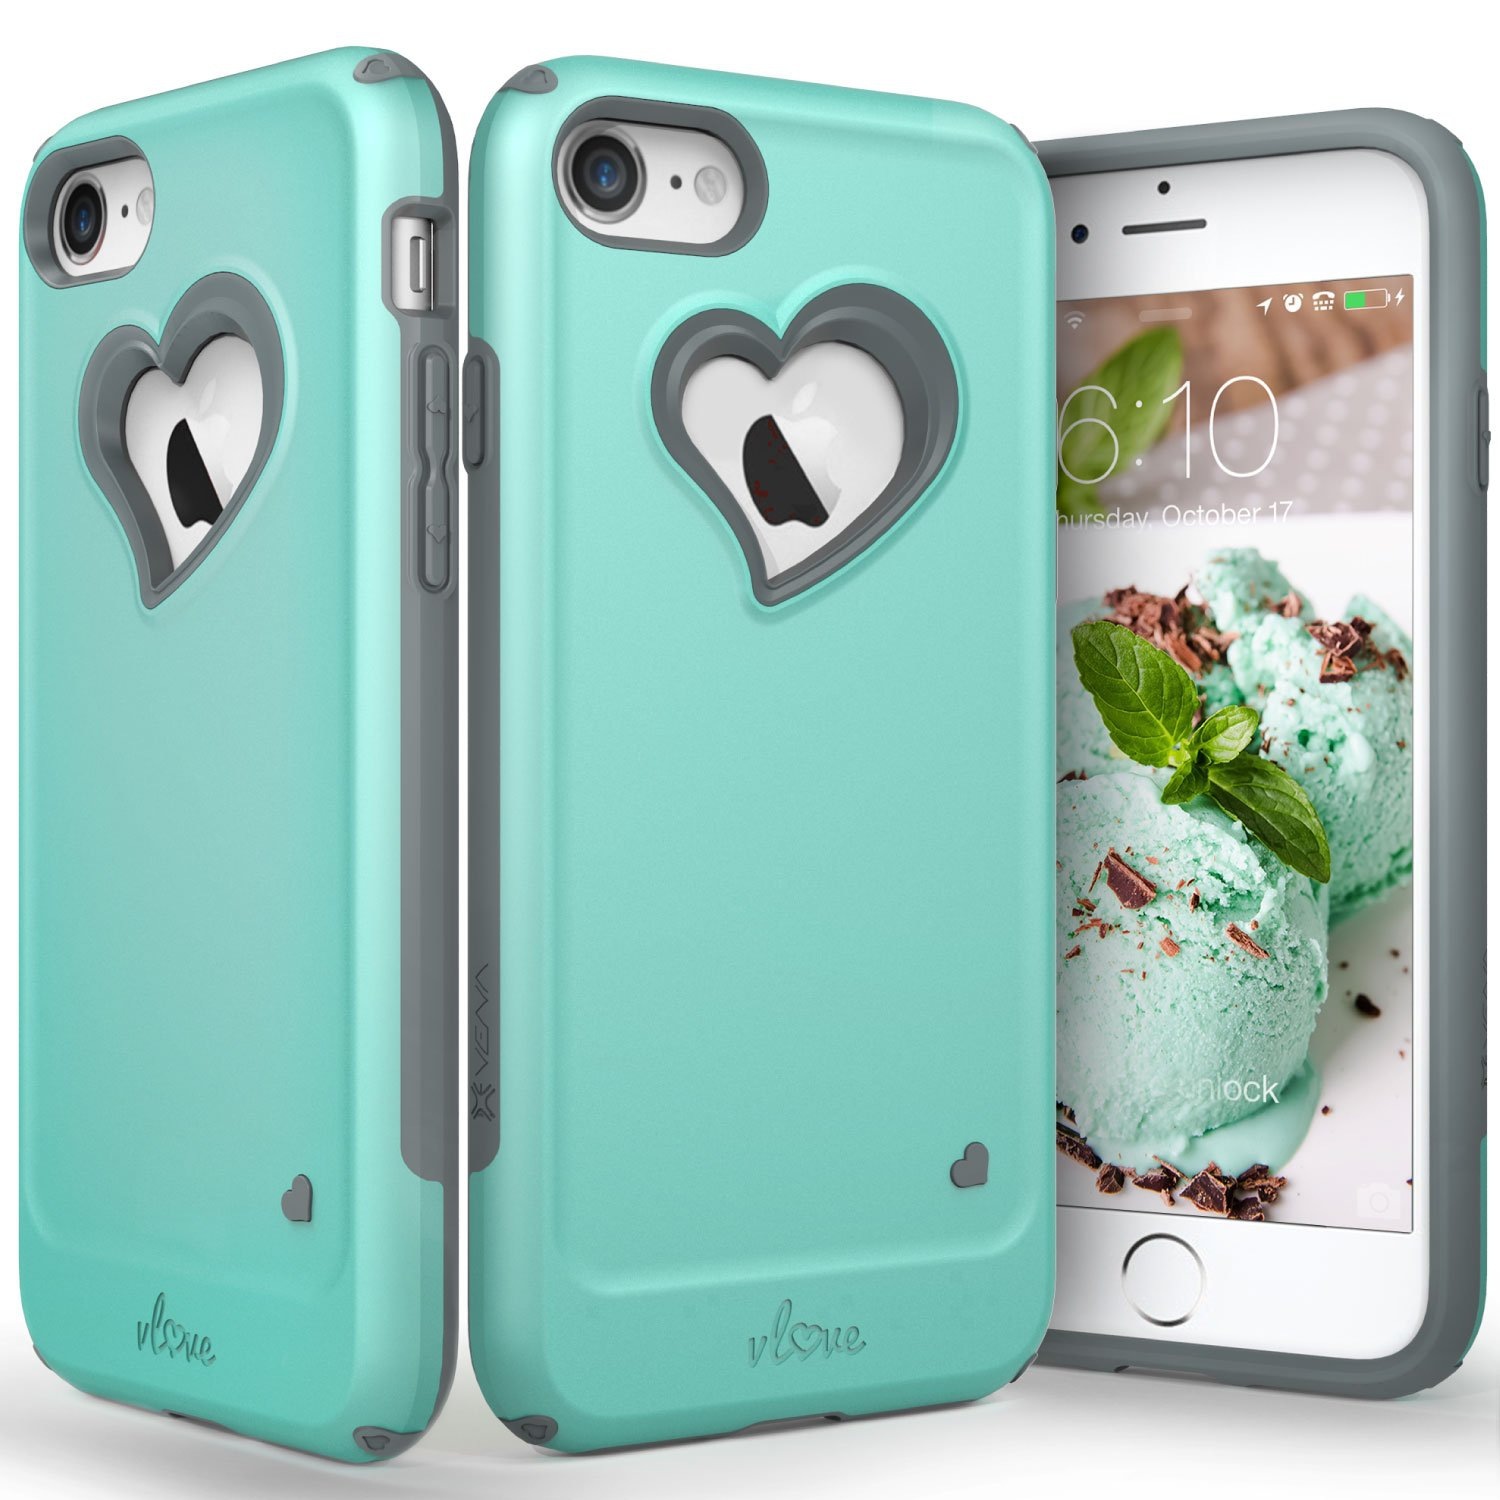 iPhone 8 Case, iPhone 7 Case, Vena [vLove][Heart-Shape | Dual Layer Protection] Hybrid Bumper Cover for Apple iPhone 8, iPh...